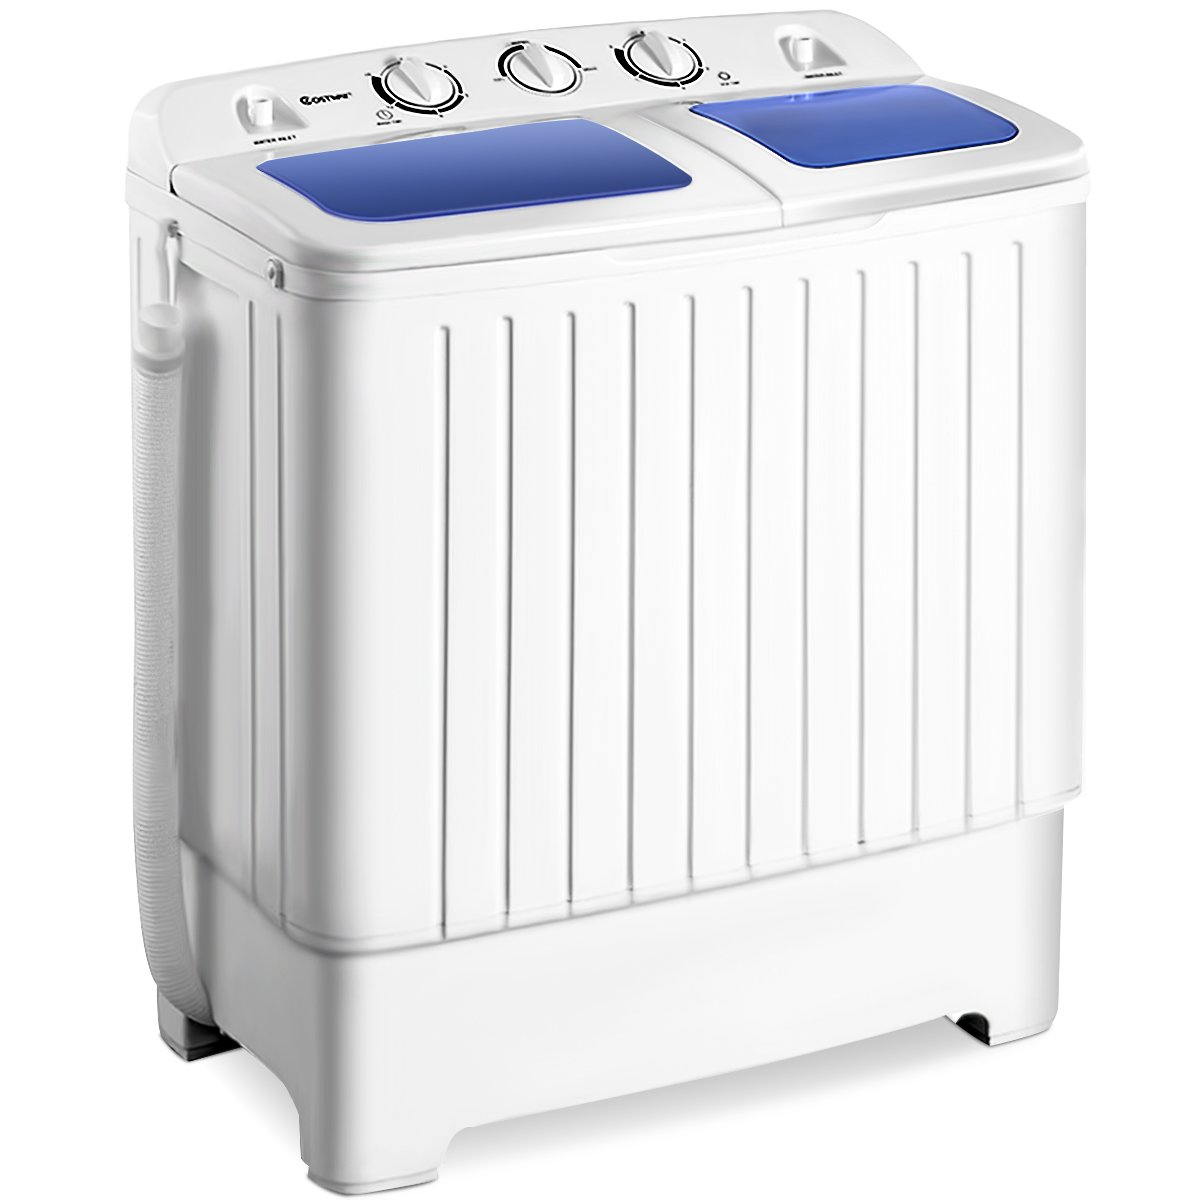 Review of Giantex Portable Mini Compact Twin Tub Washing Machine 17.6lbs